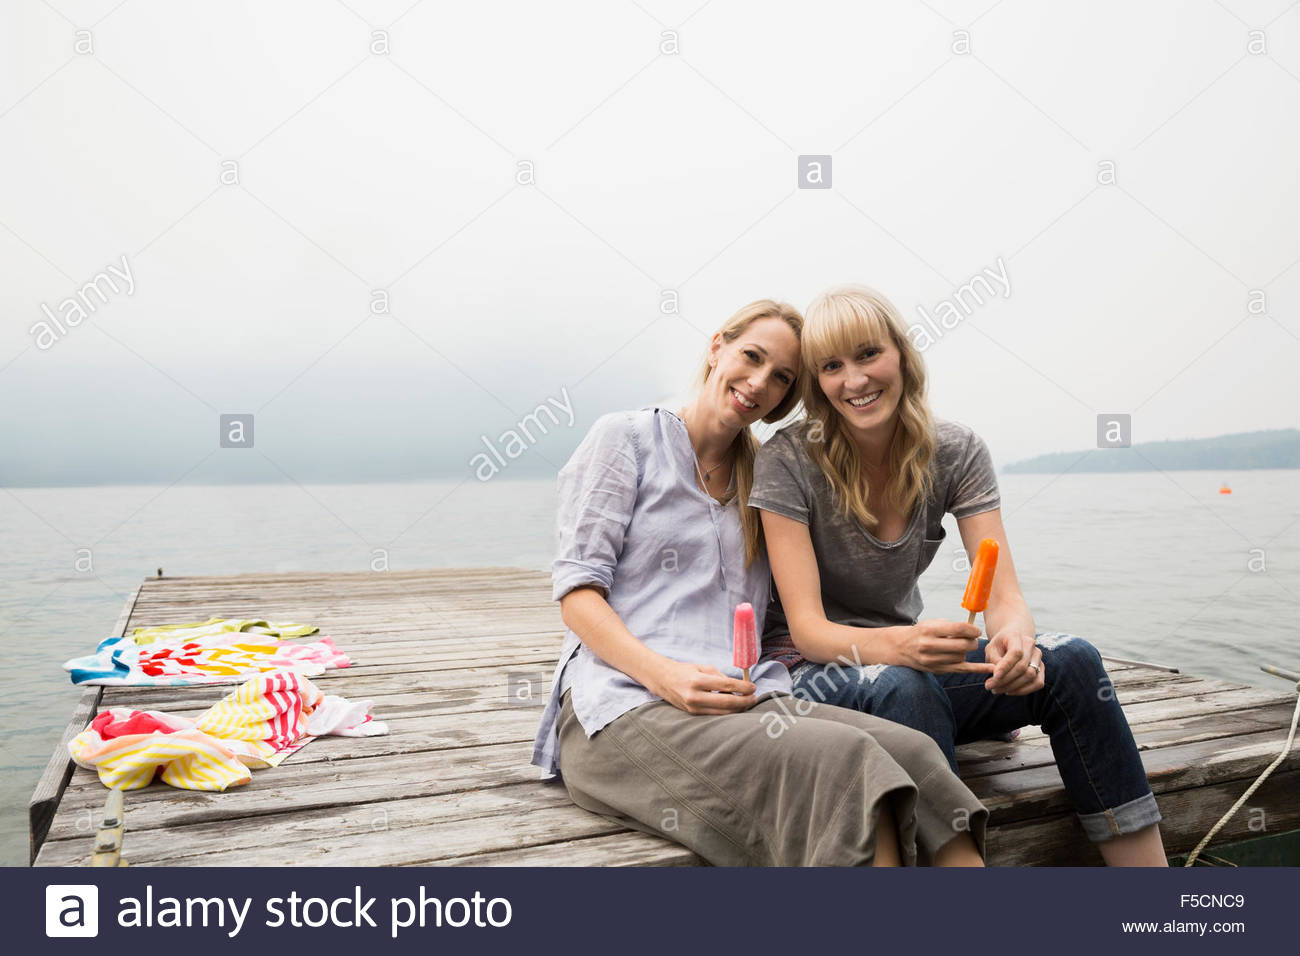 Portrait mother daughter eating flavored ice lake dock - Stock Image